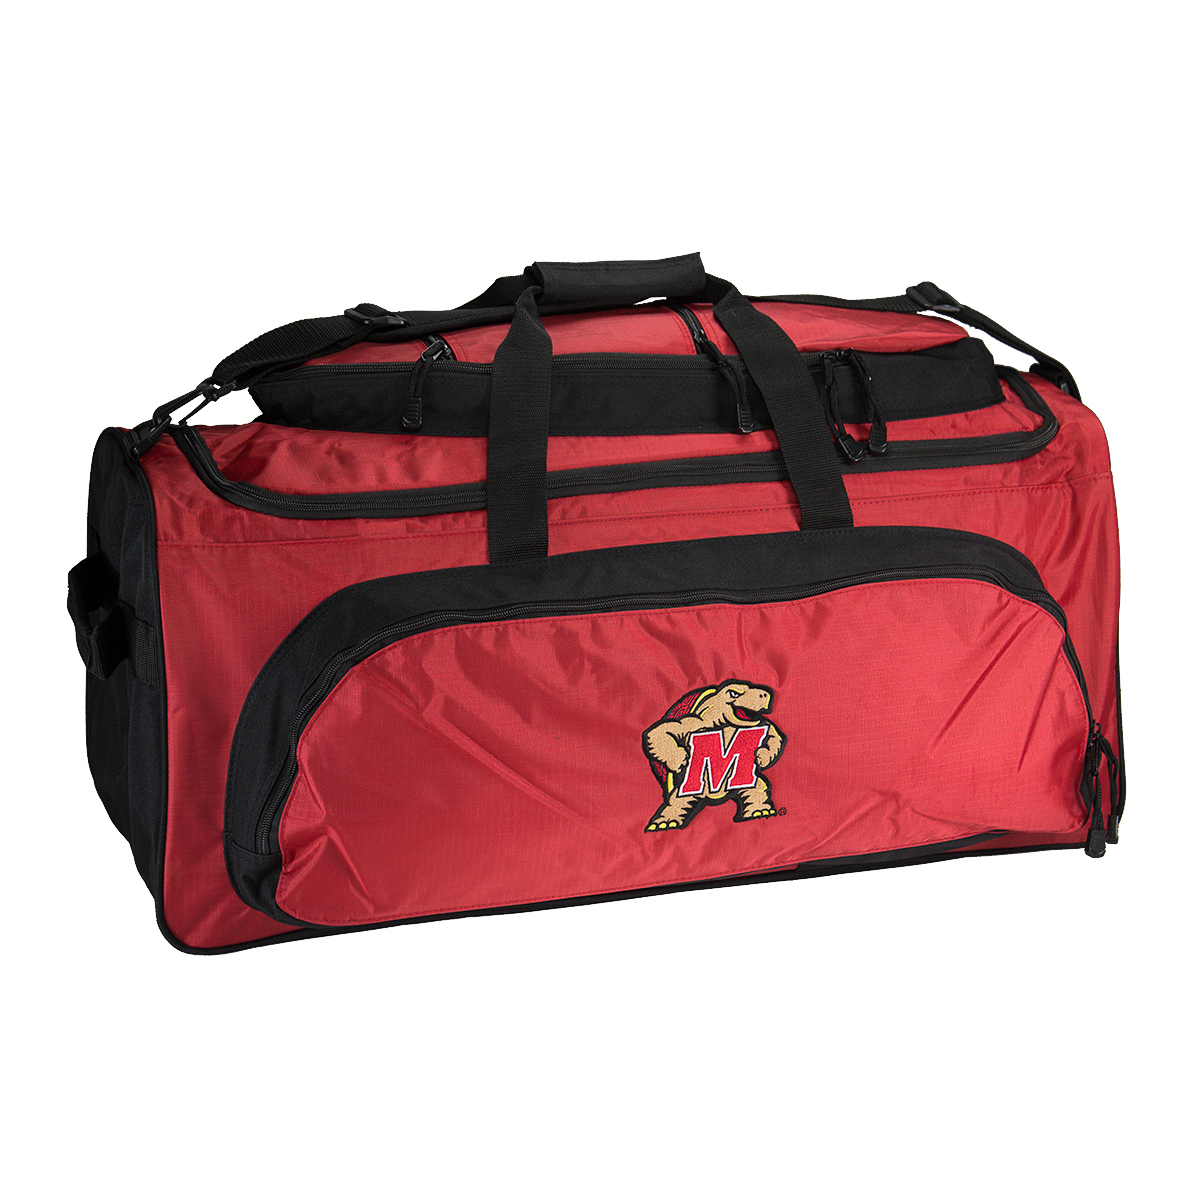 NCAA Heavy Duty Collegiate Sport 27��� Large Duffel Tote Bag School College Duffle